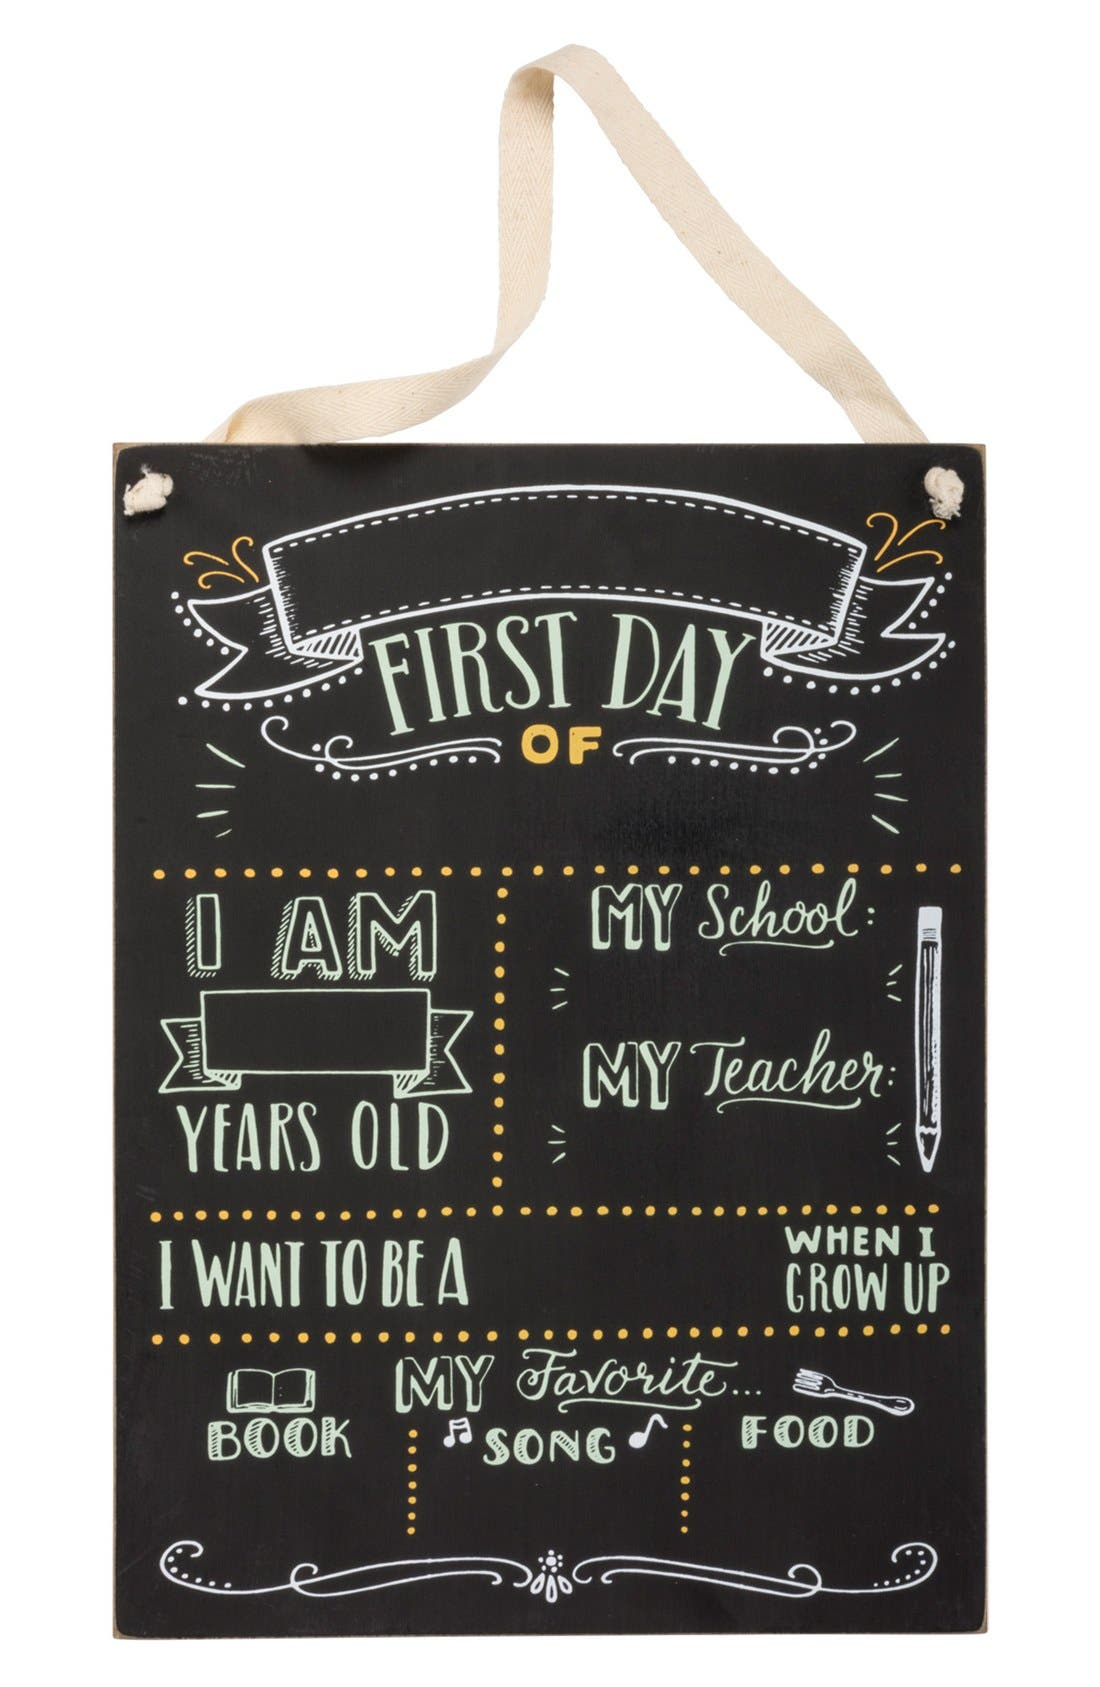 Primitives by Kathy 'First Day of School' Chalkboard Sign